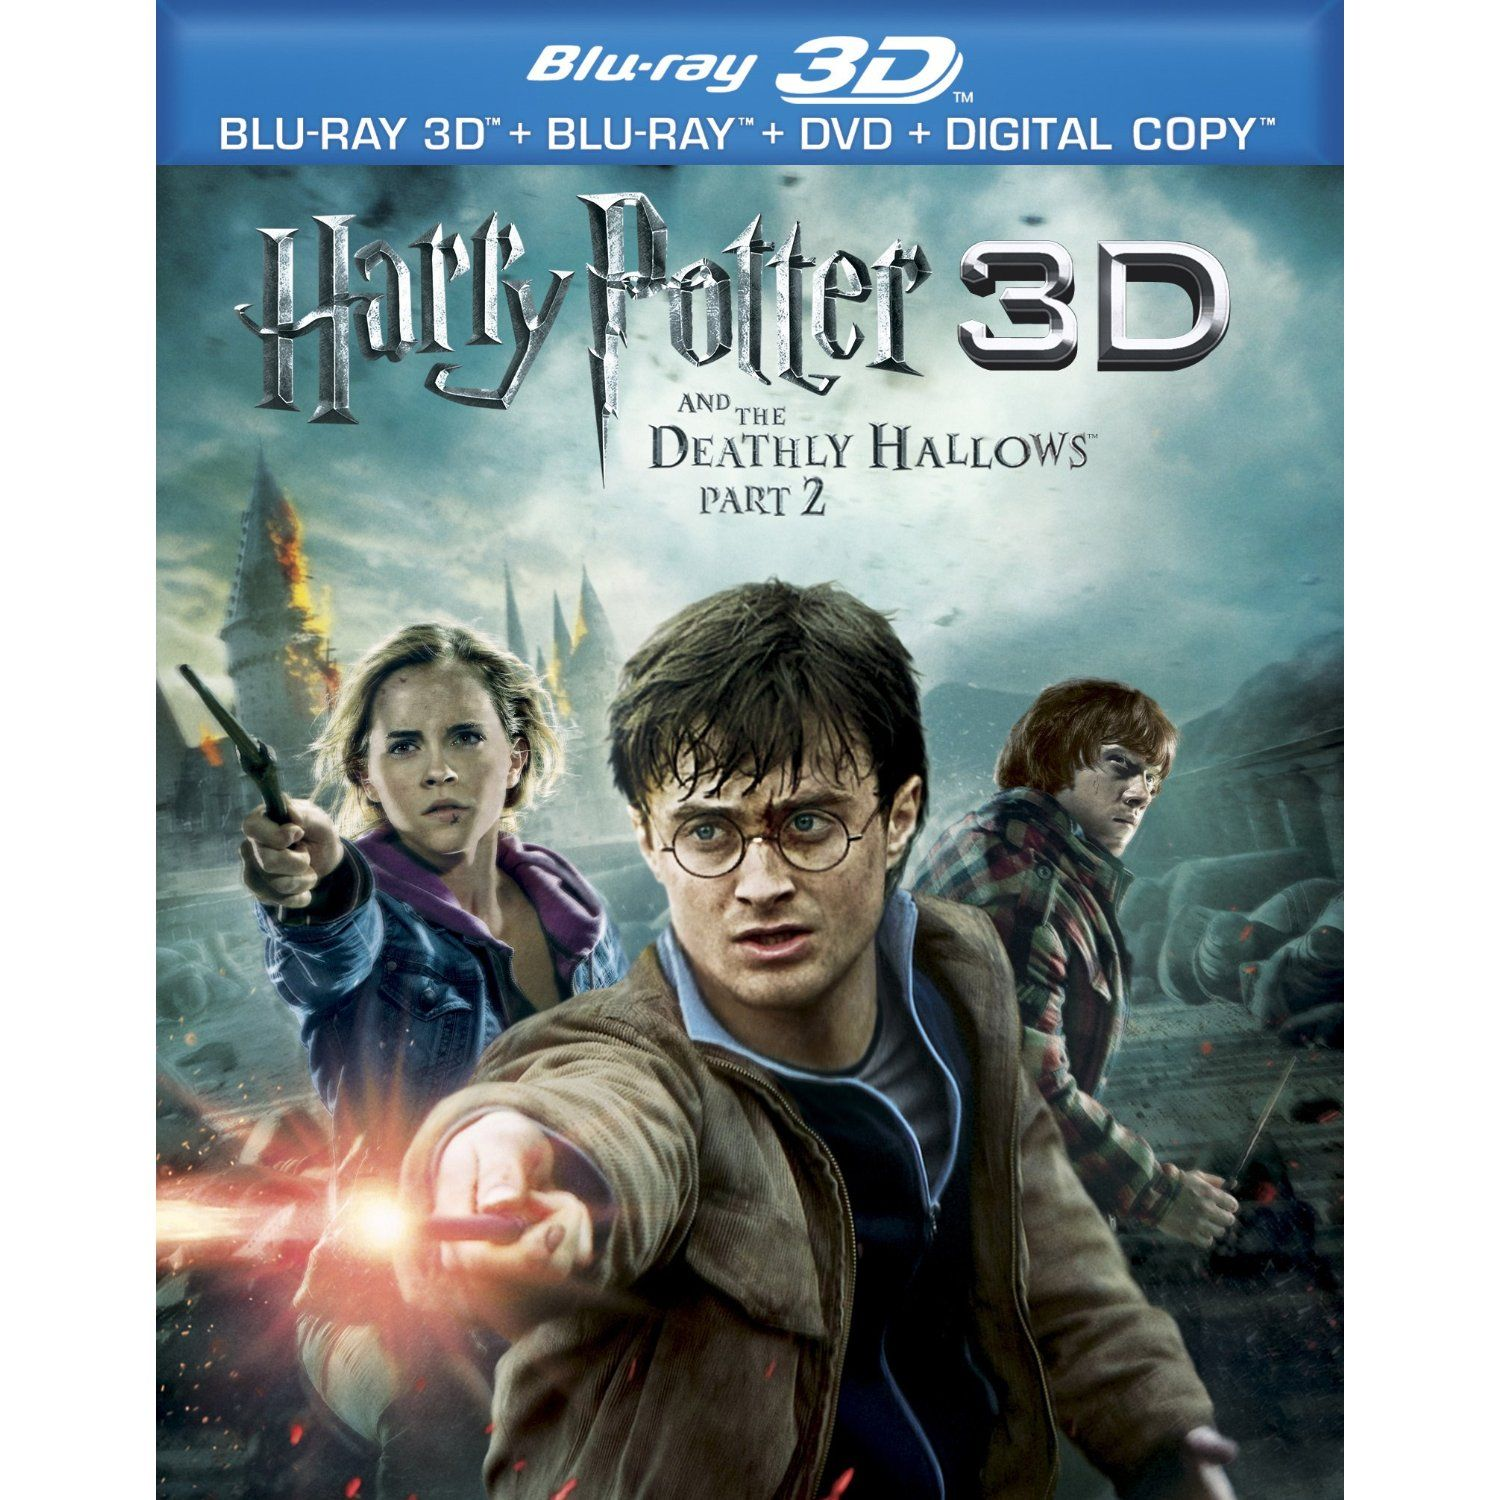 Harry Potter And The Deathly Hallows Part 2 Blu Ray 3d Blu Ray Dvd Digital Copy Deathly Hallows Part 2 Harry Potter Movies Deathly Hallows